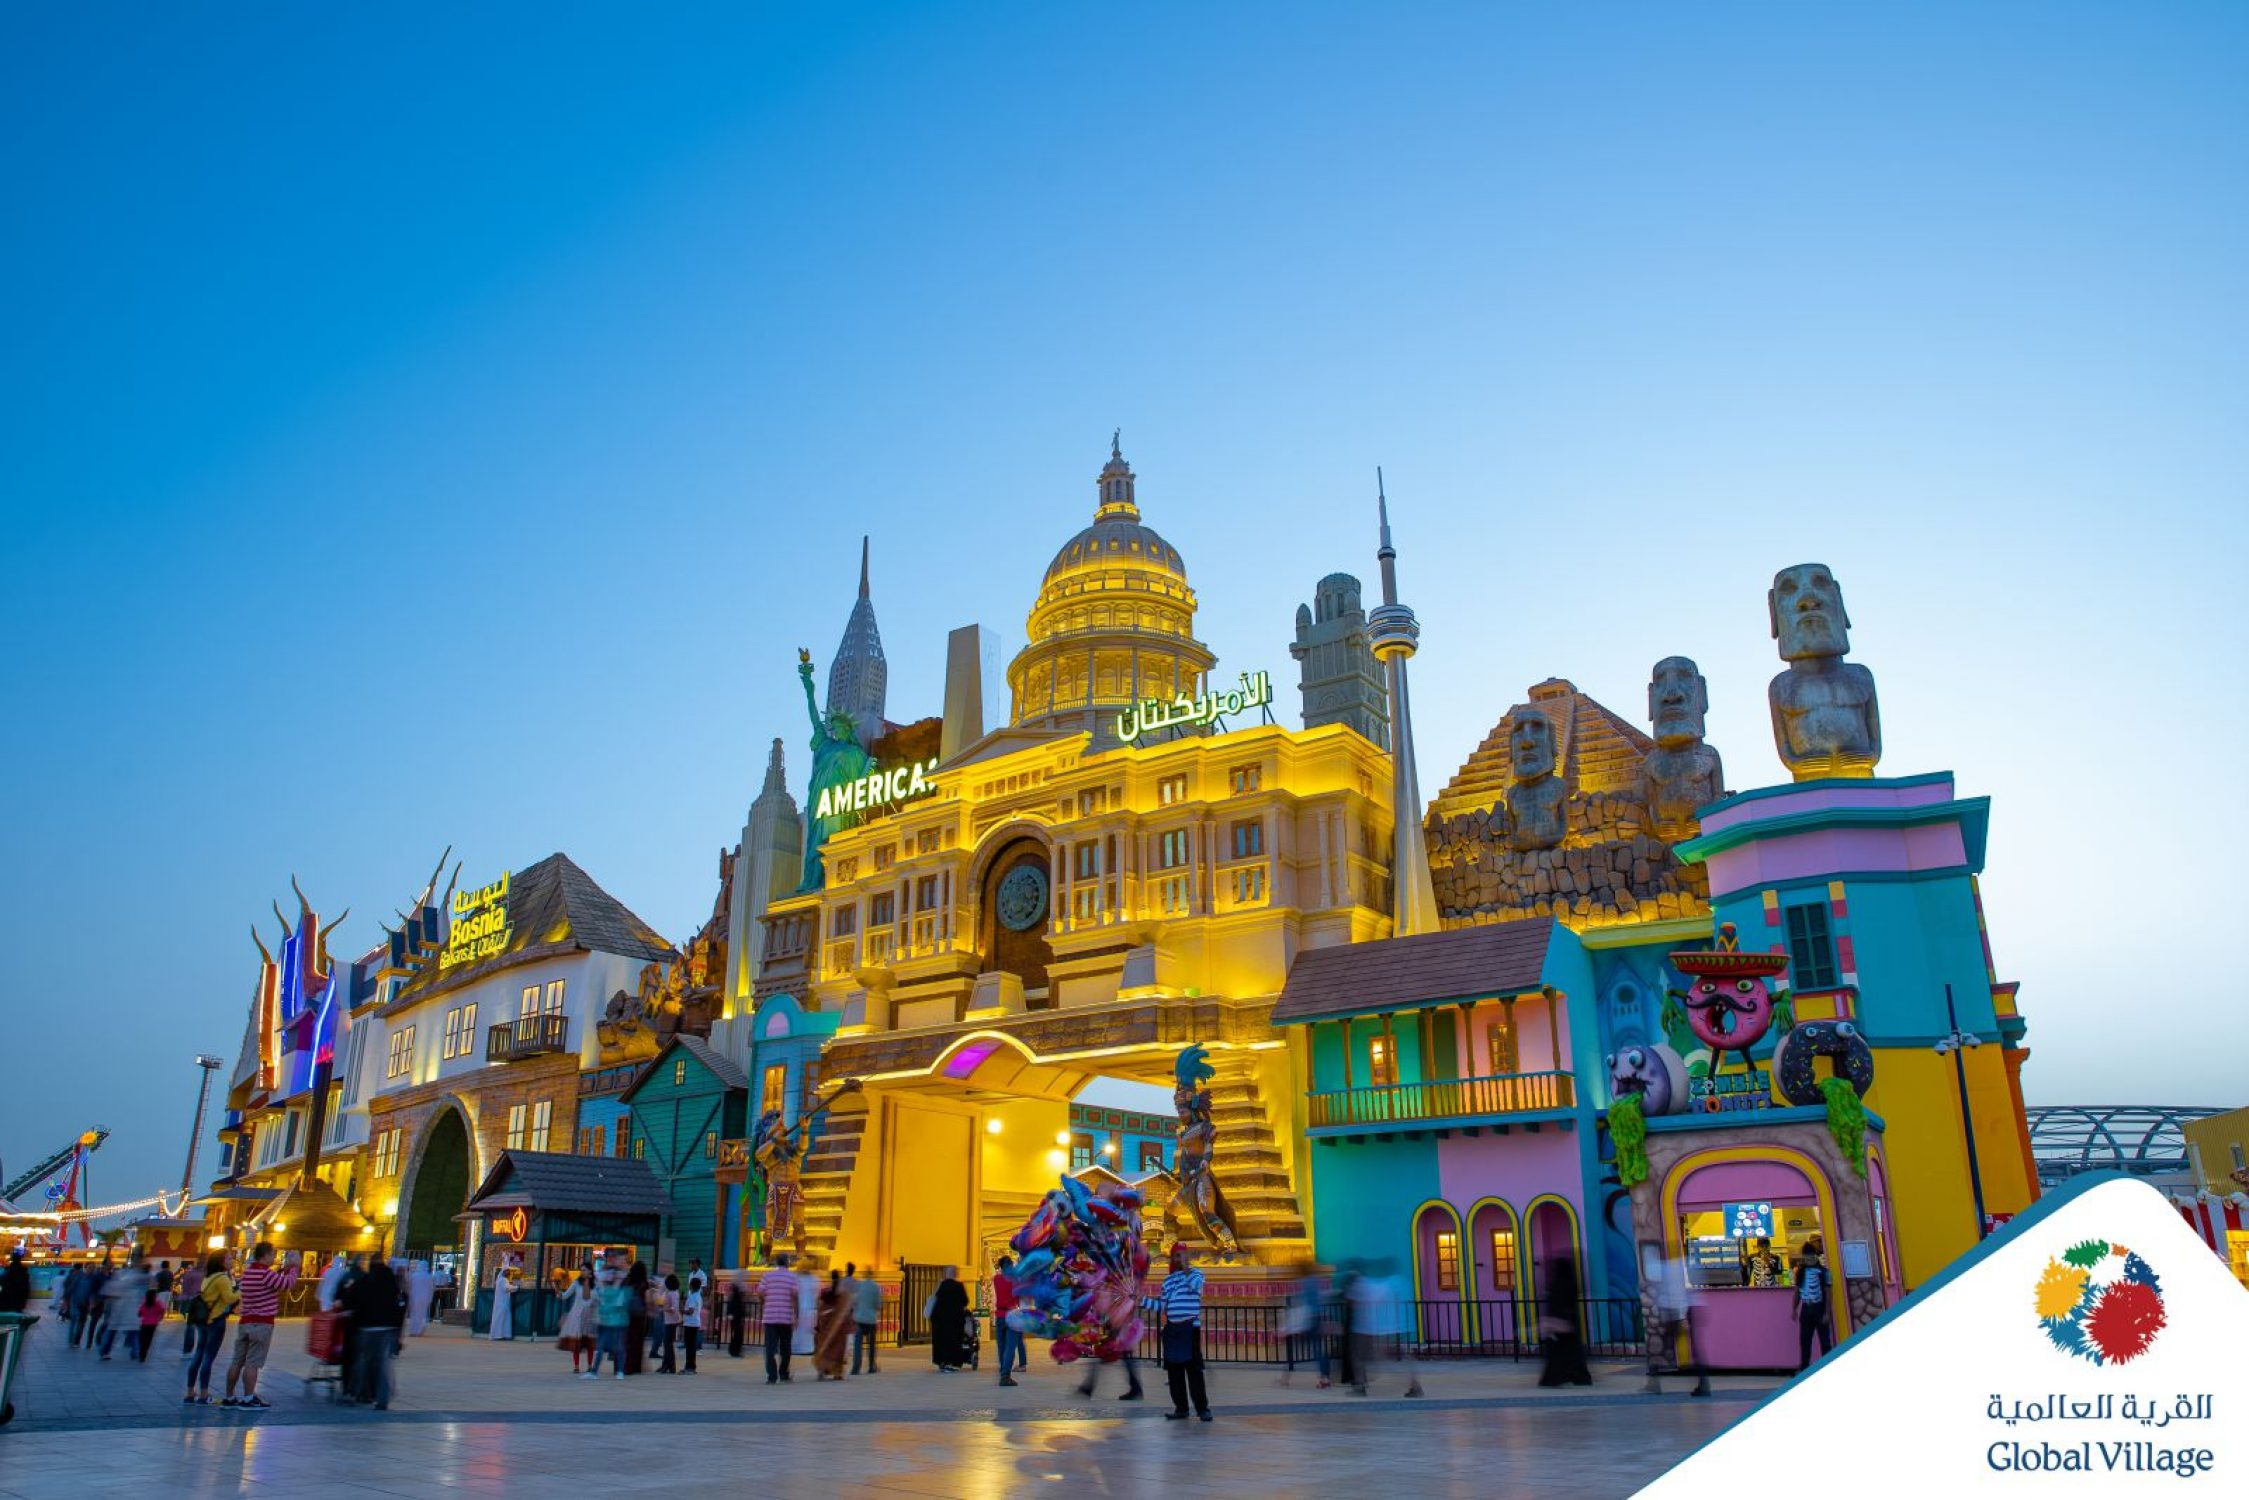 Global Village Dubai opening date 2019 – 2020